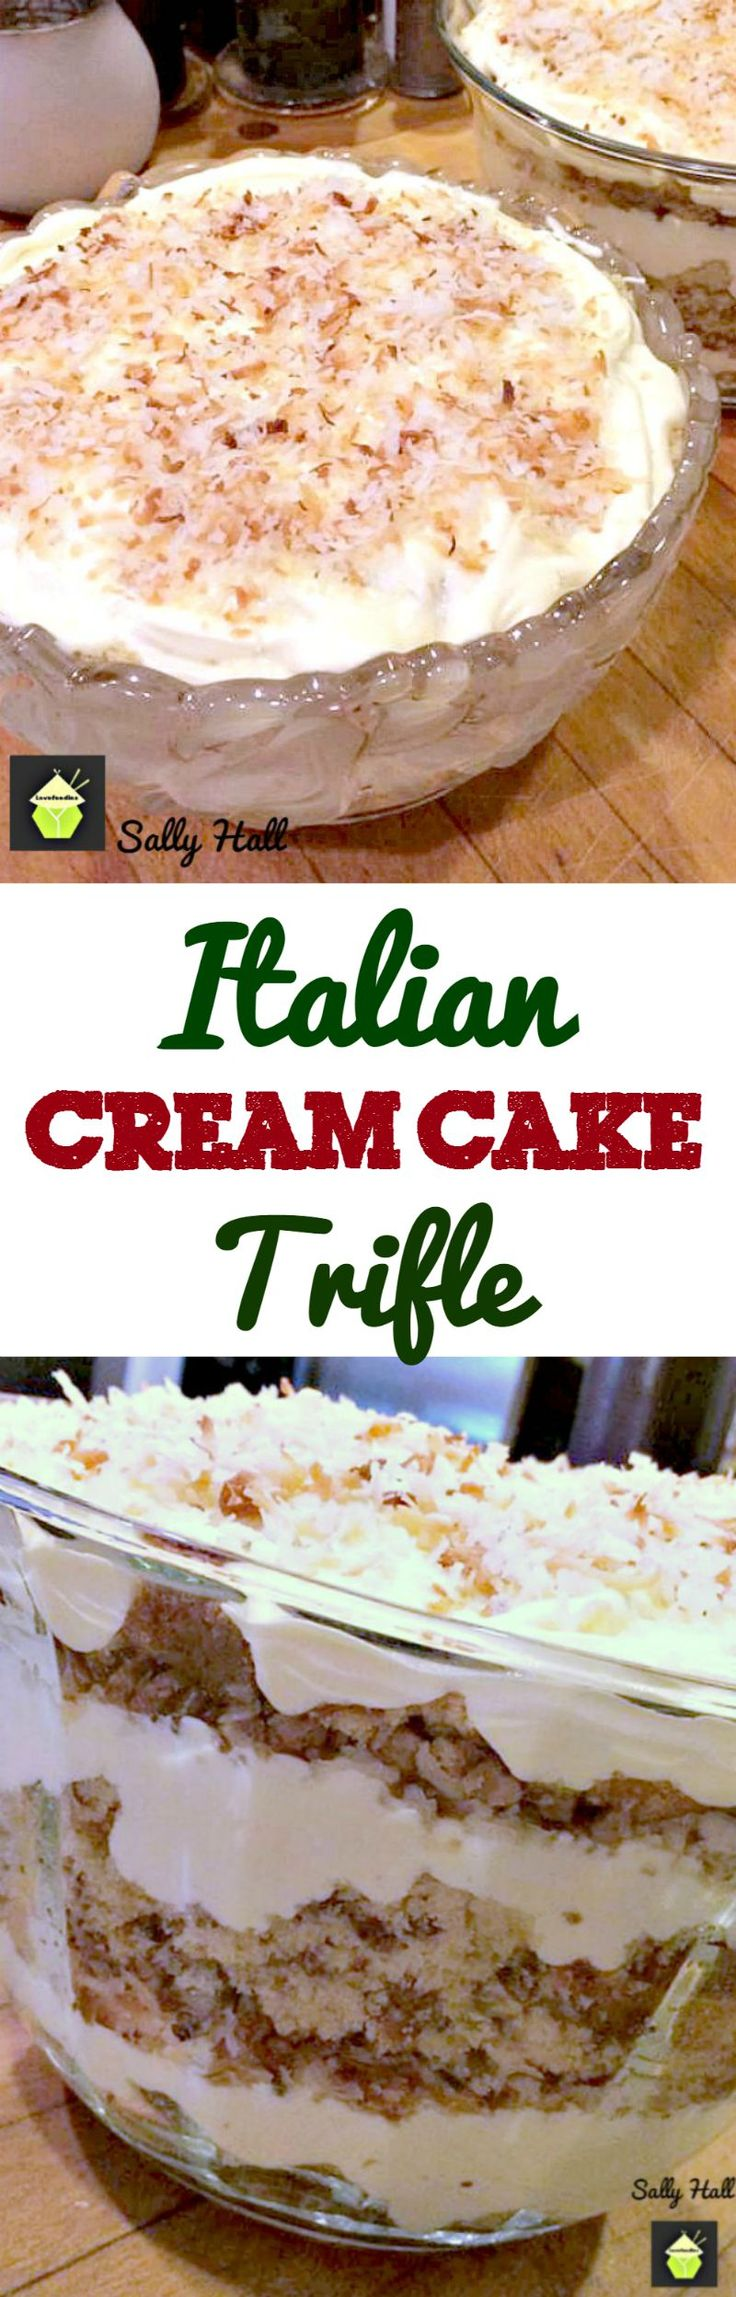 Italian Cream Cake Trifle, this is the most amazing trifle! Layers of classic fluffy Italian Cream Cake combined with delicious layers of creamy pudding, pecans and coconut will bring smiles to everyone who eats this!